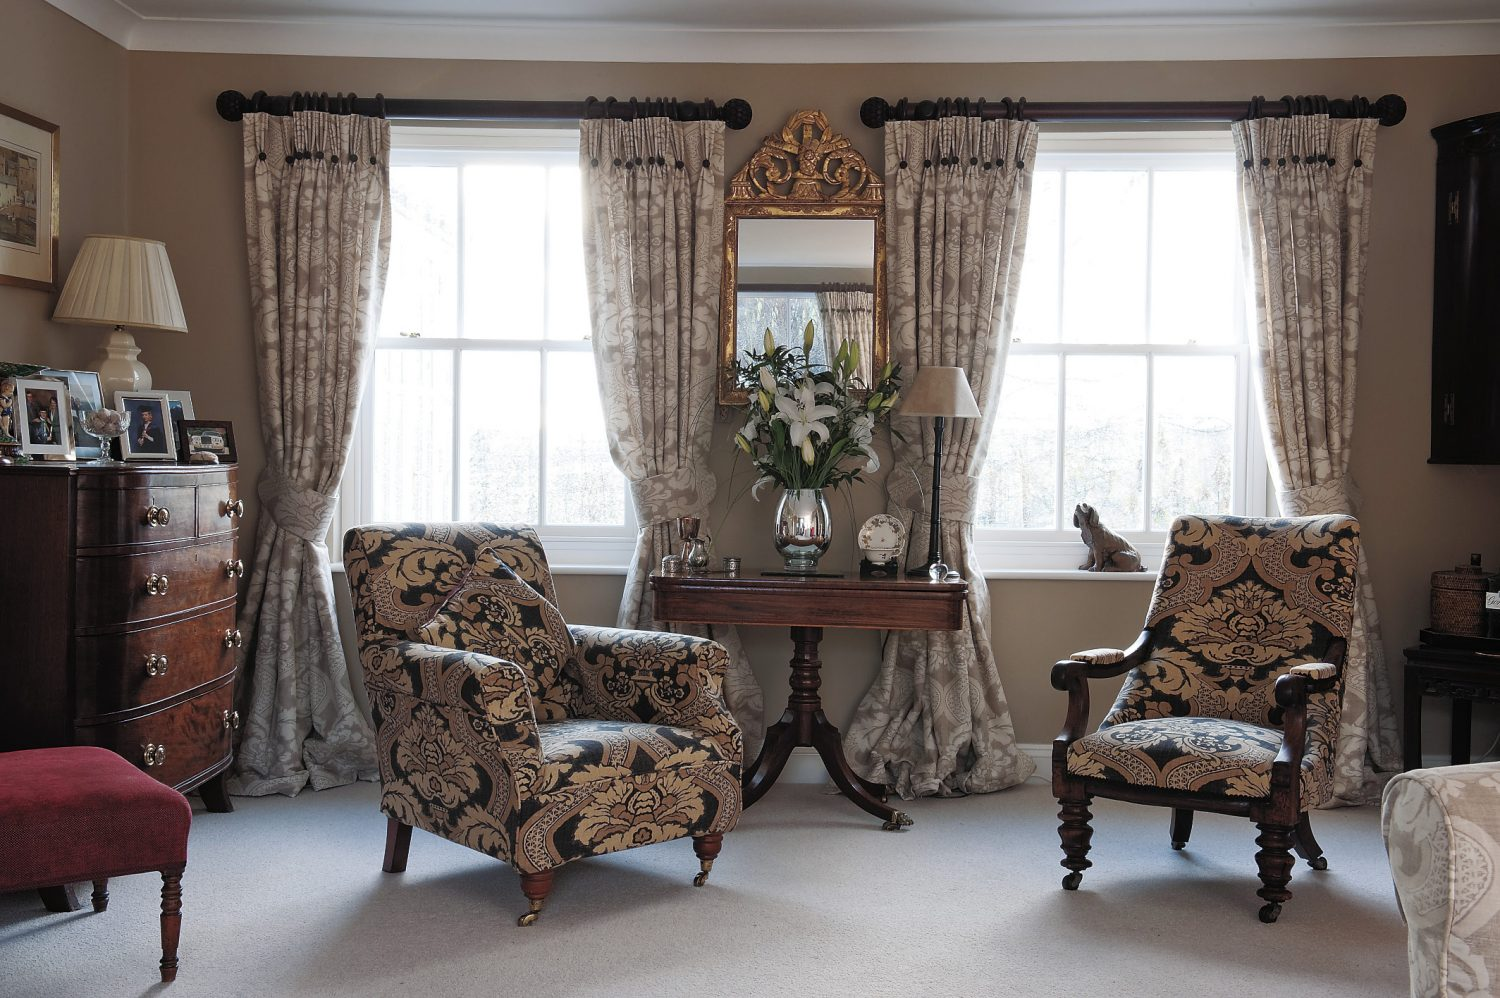 the drawing room - painted in Fired Earth's putty - is restful but sophisticated